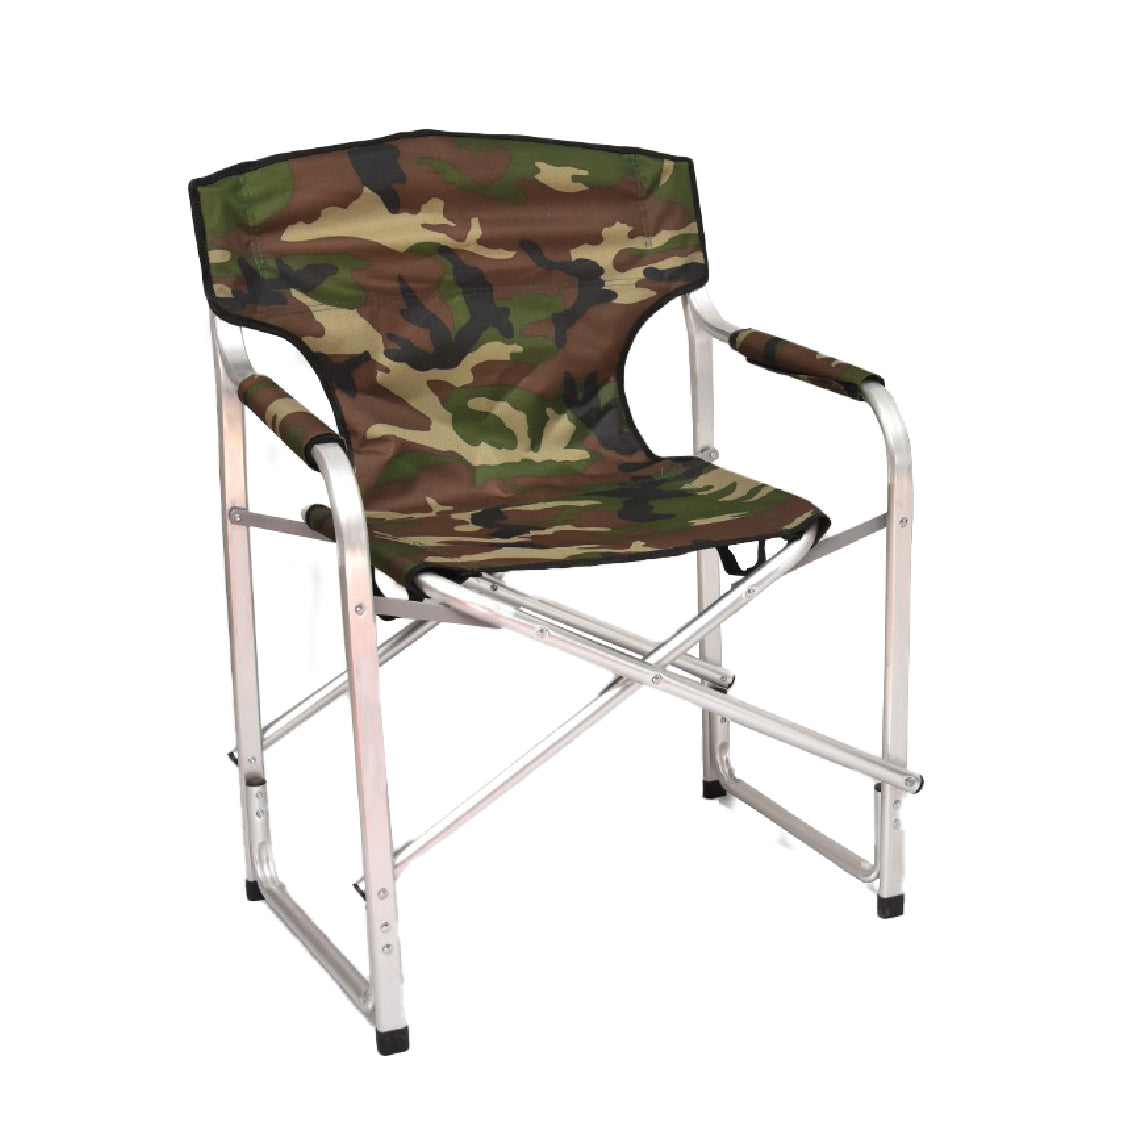 Portable Deck Folding Praying Chair